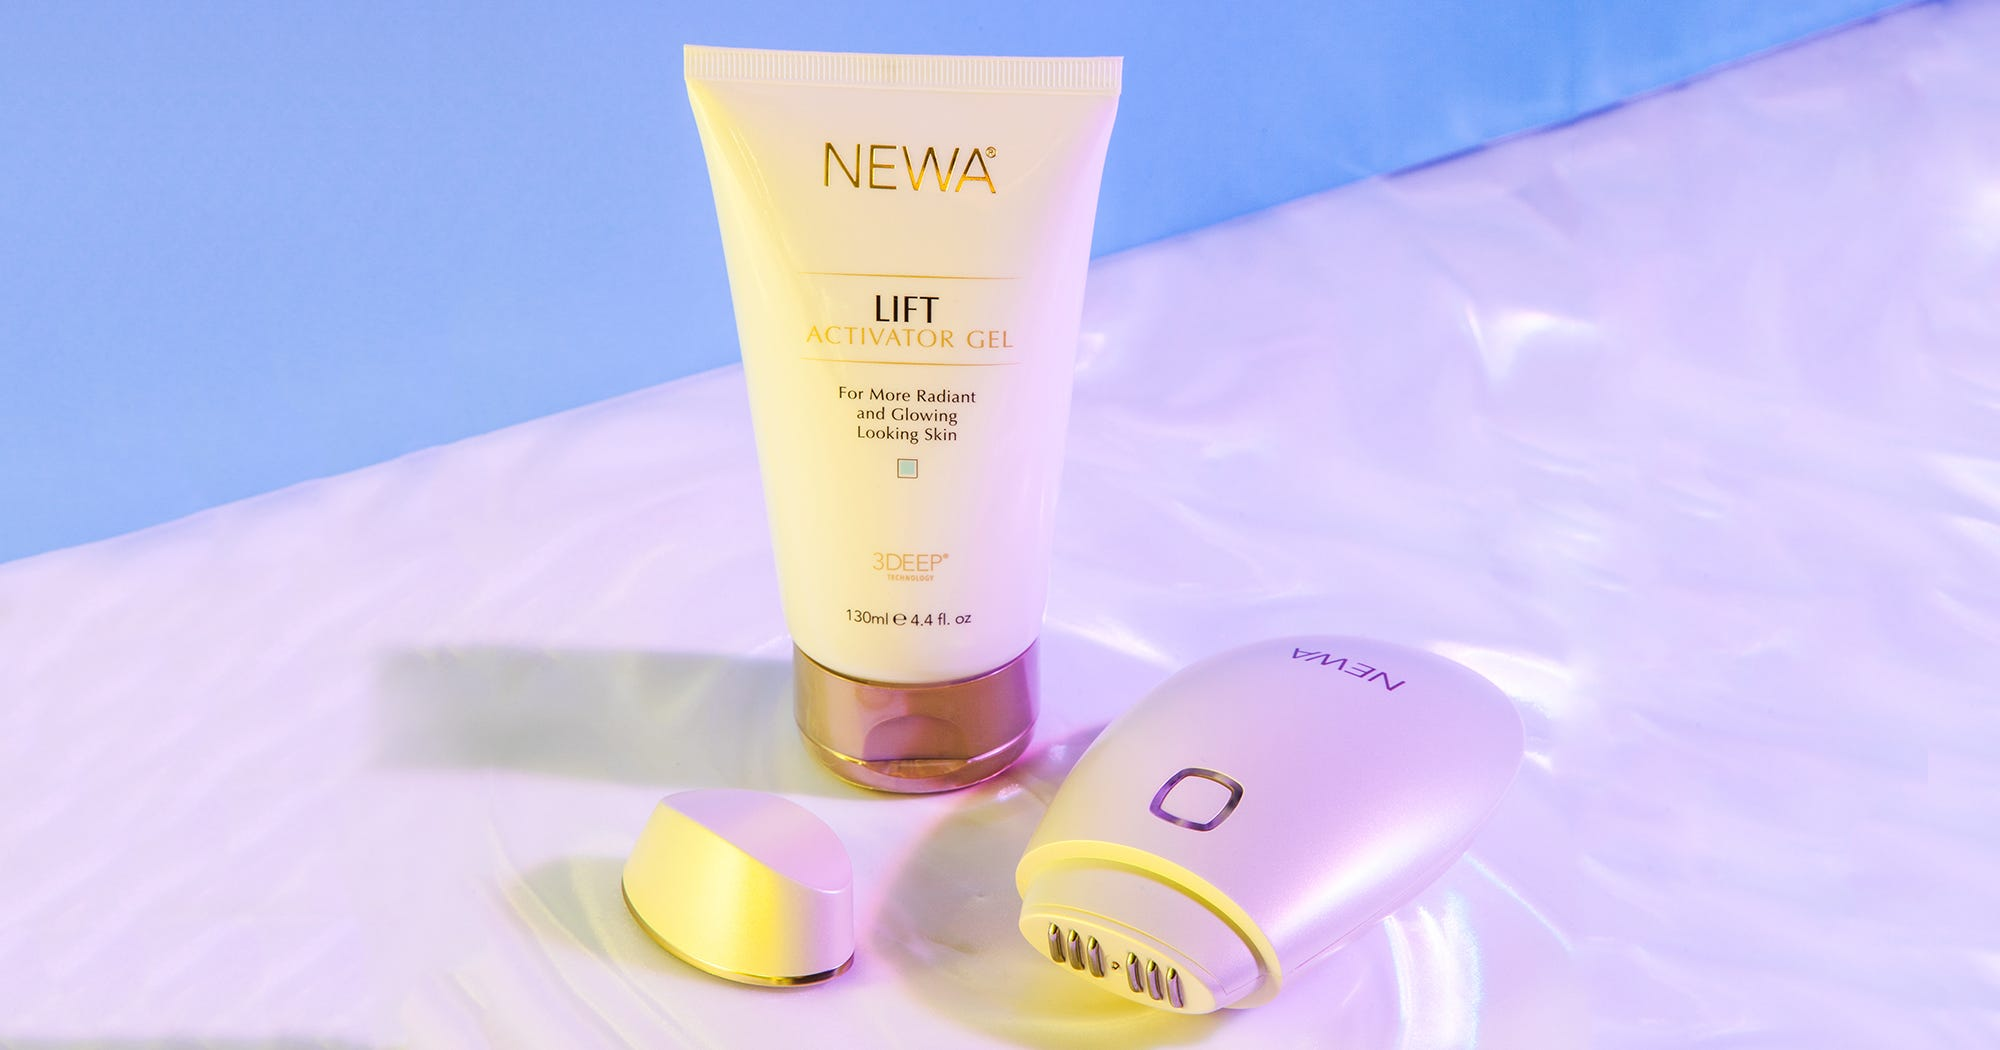 Newa Skin Care System At Home Wrinkle Treatment